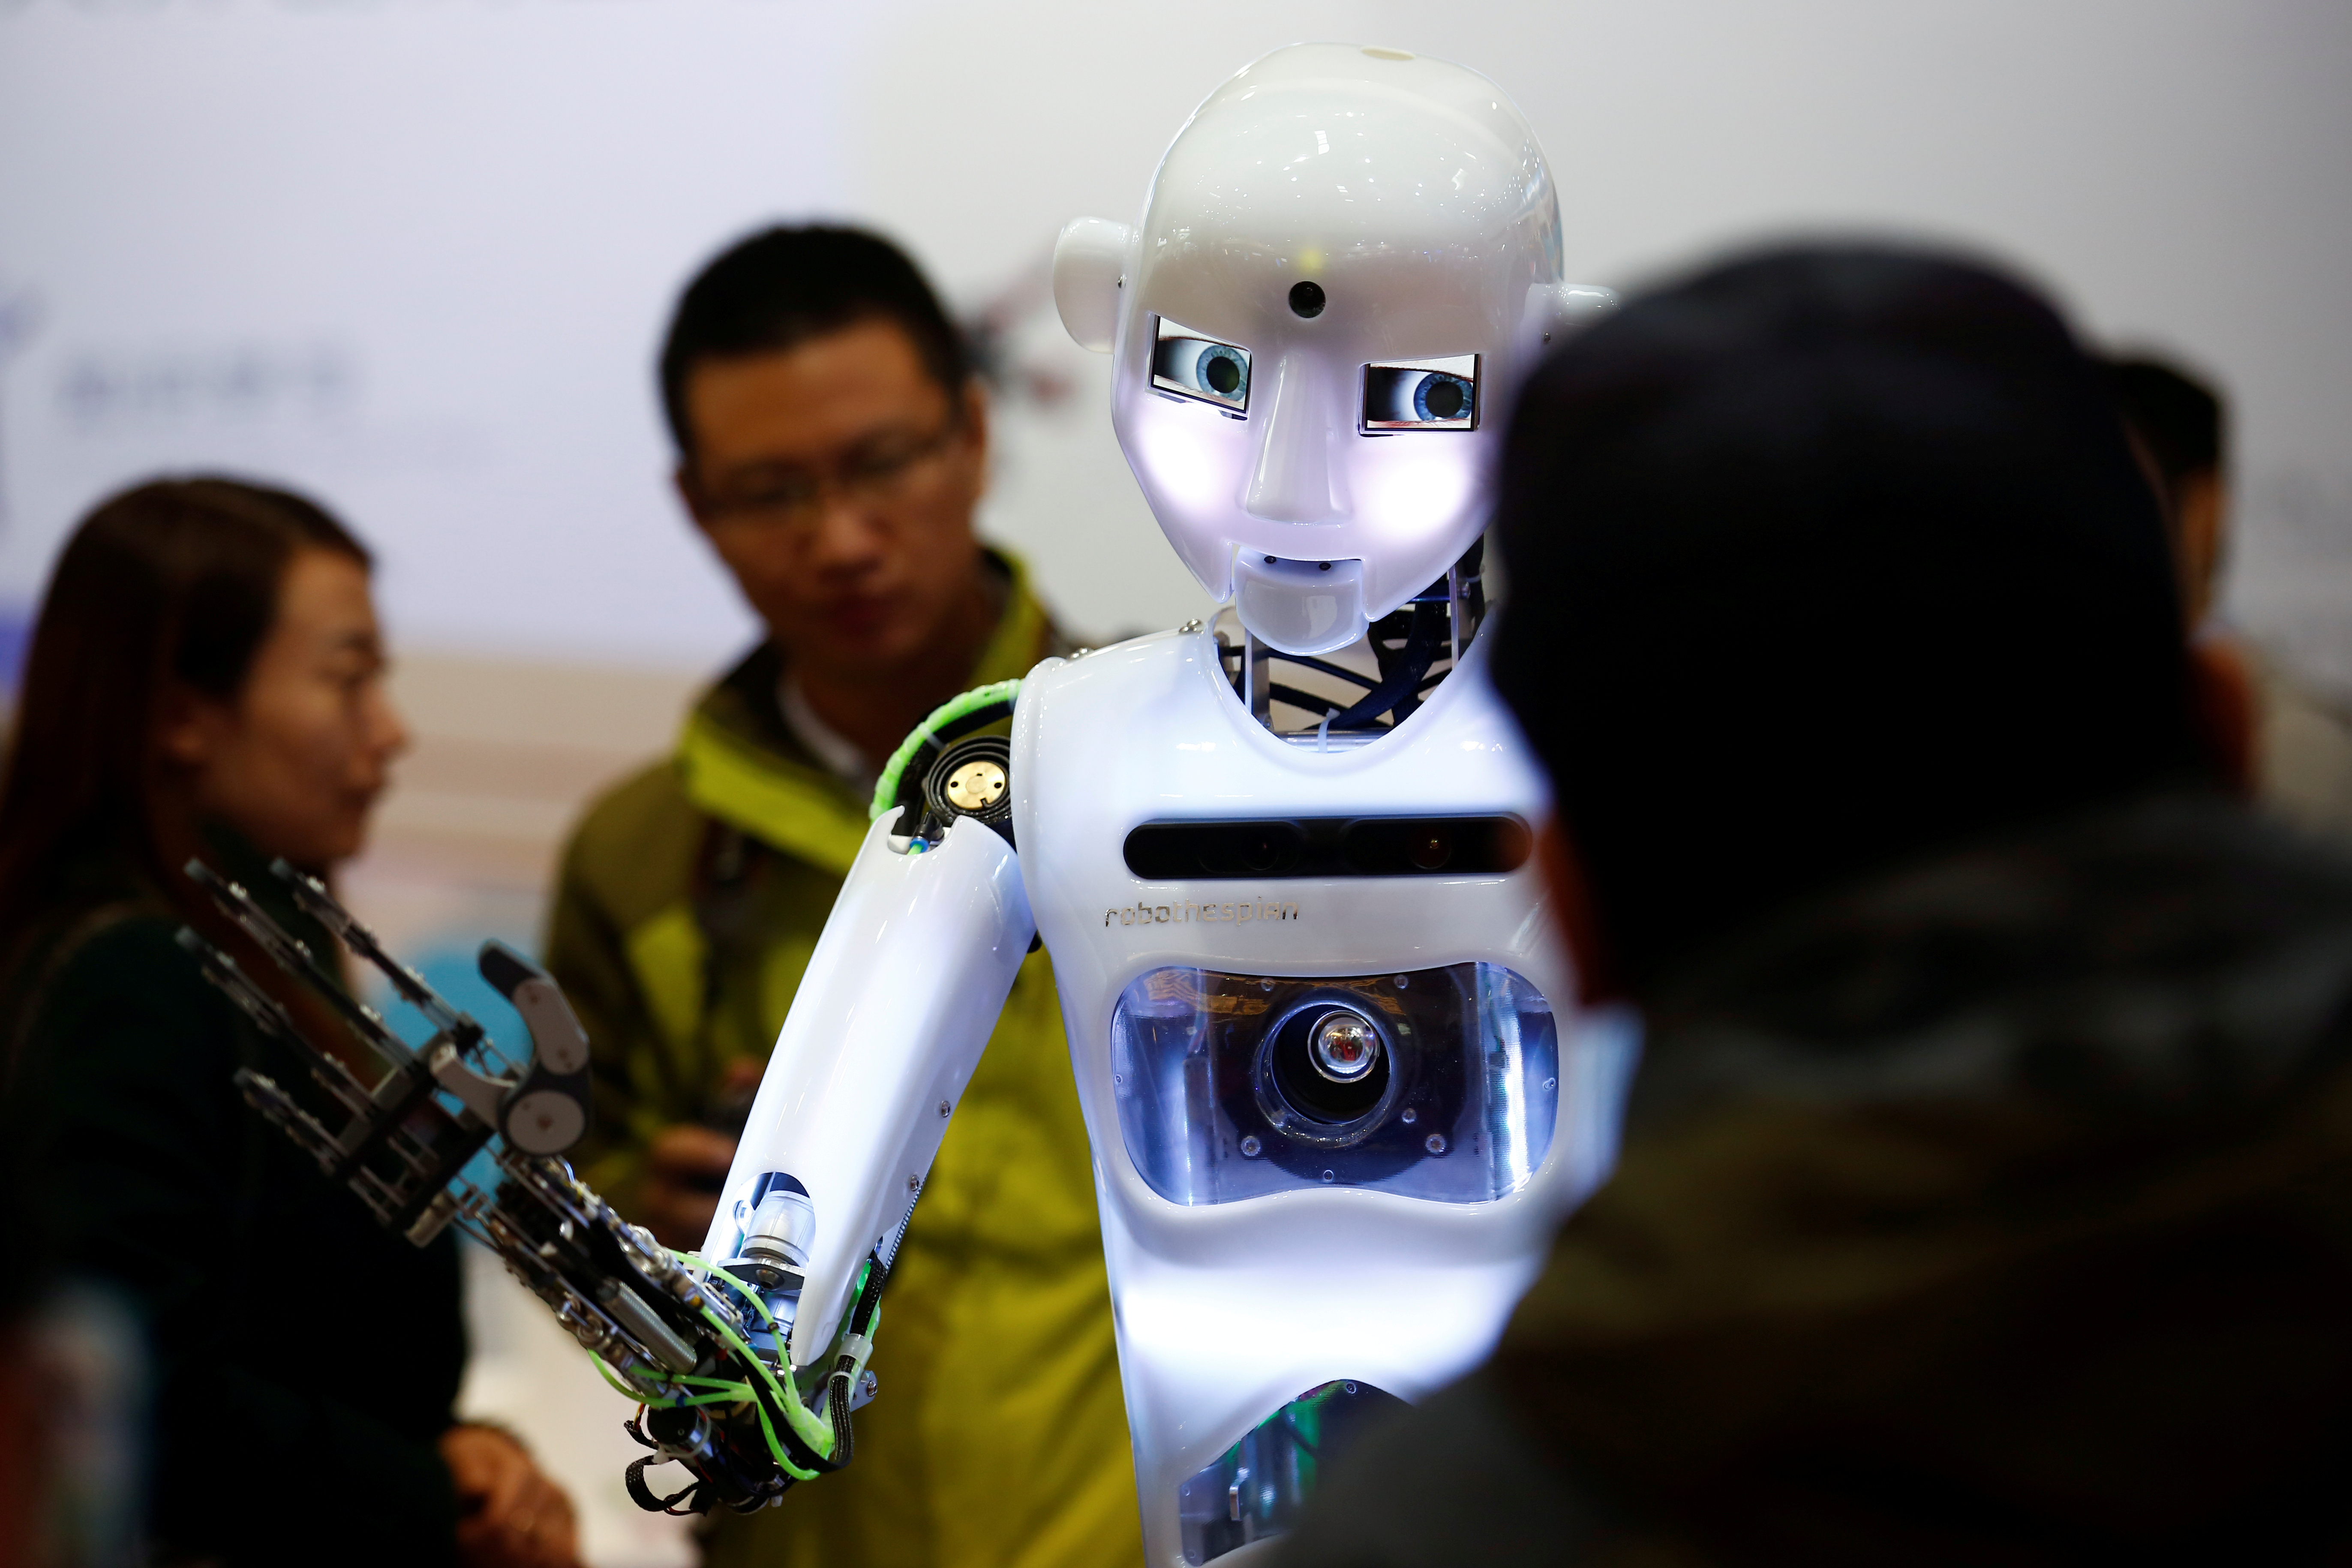 FILE PHOTO: People look at a RoboThespian humanoid robot at the Tami Intelligence Technology stall at the WRC 2016 World Robot Conference in Beijing, China, October 21, 2016.